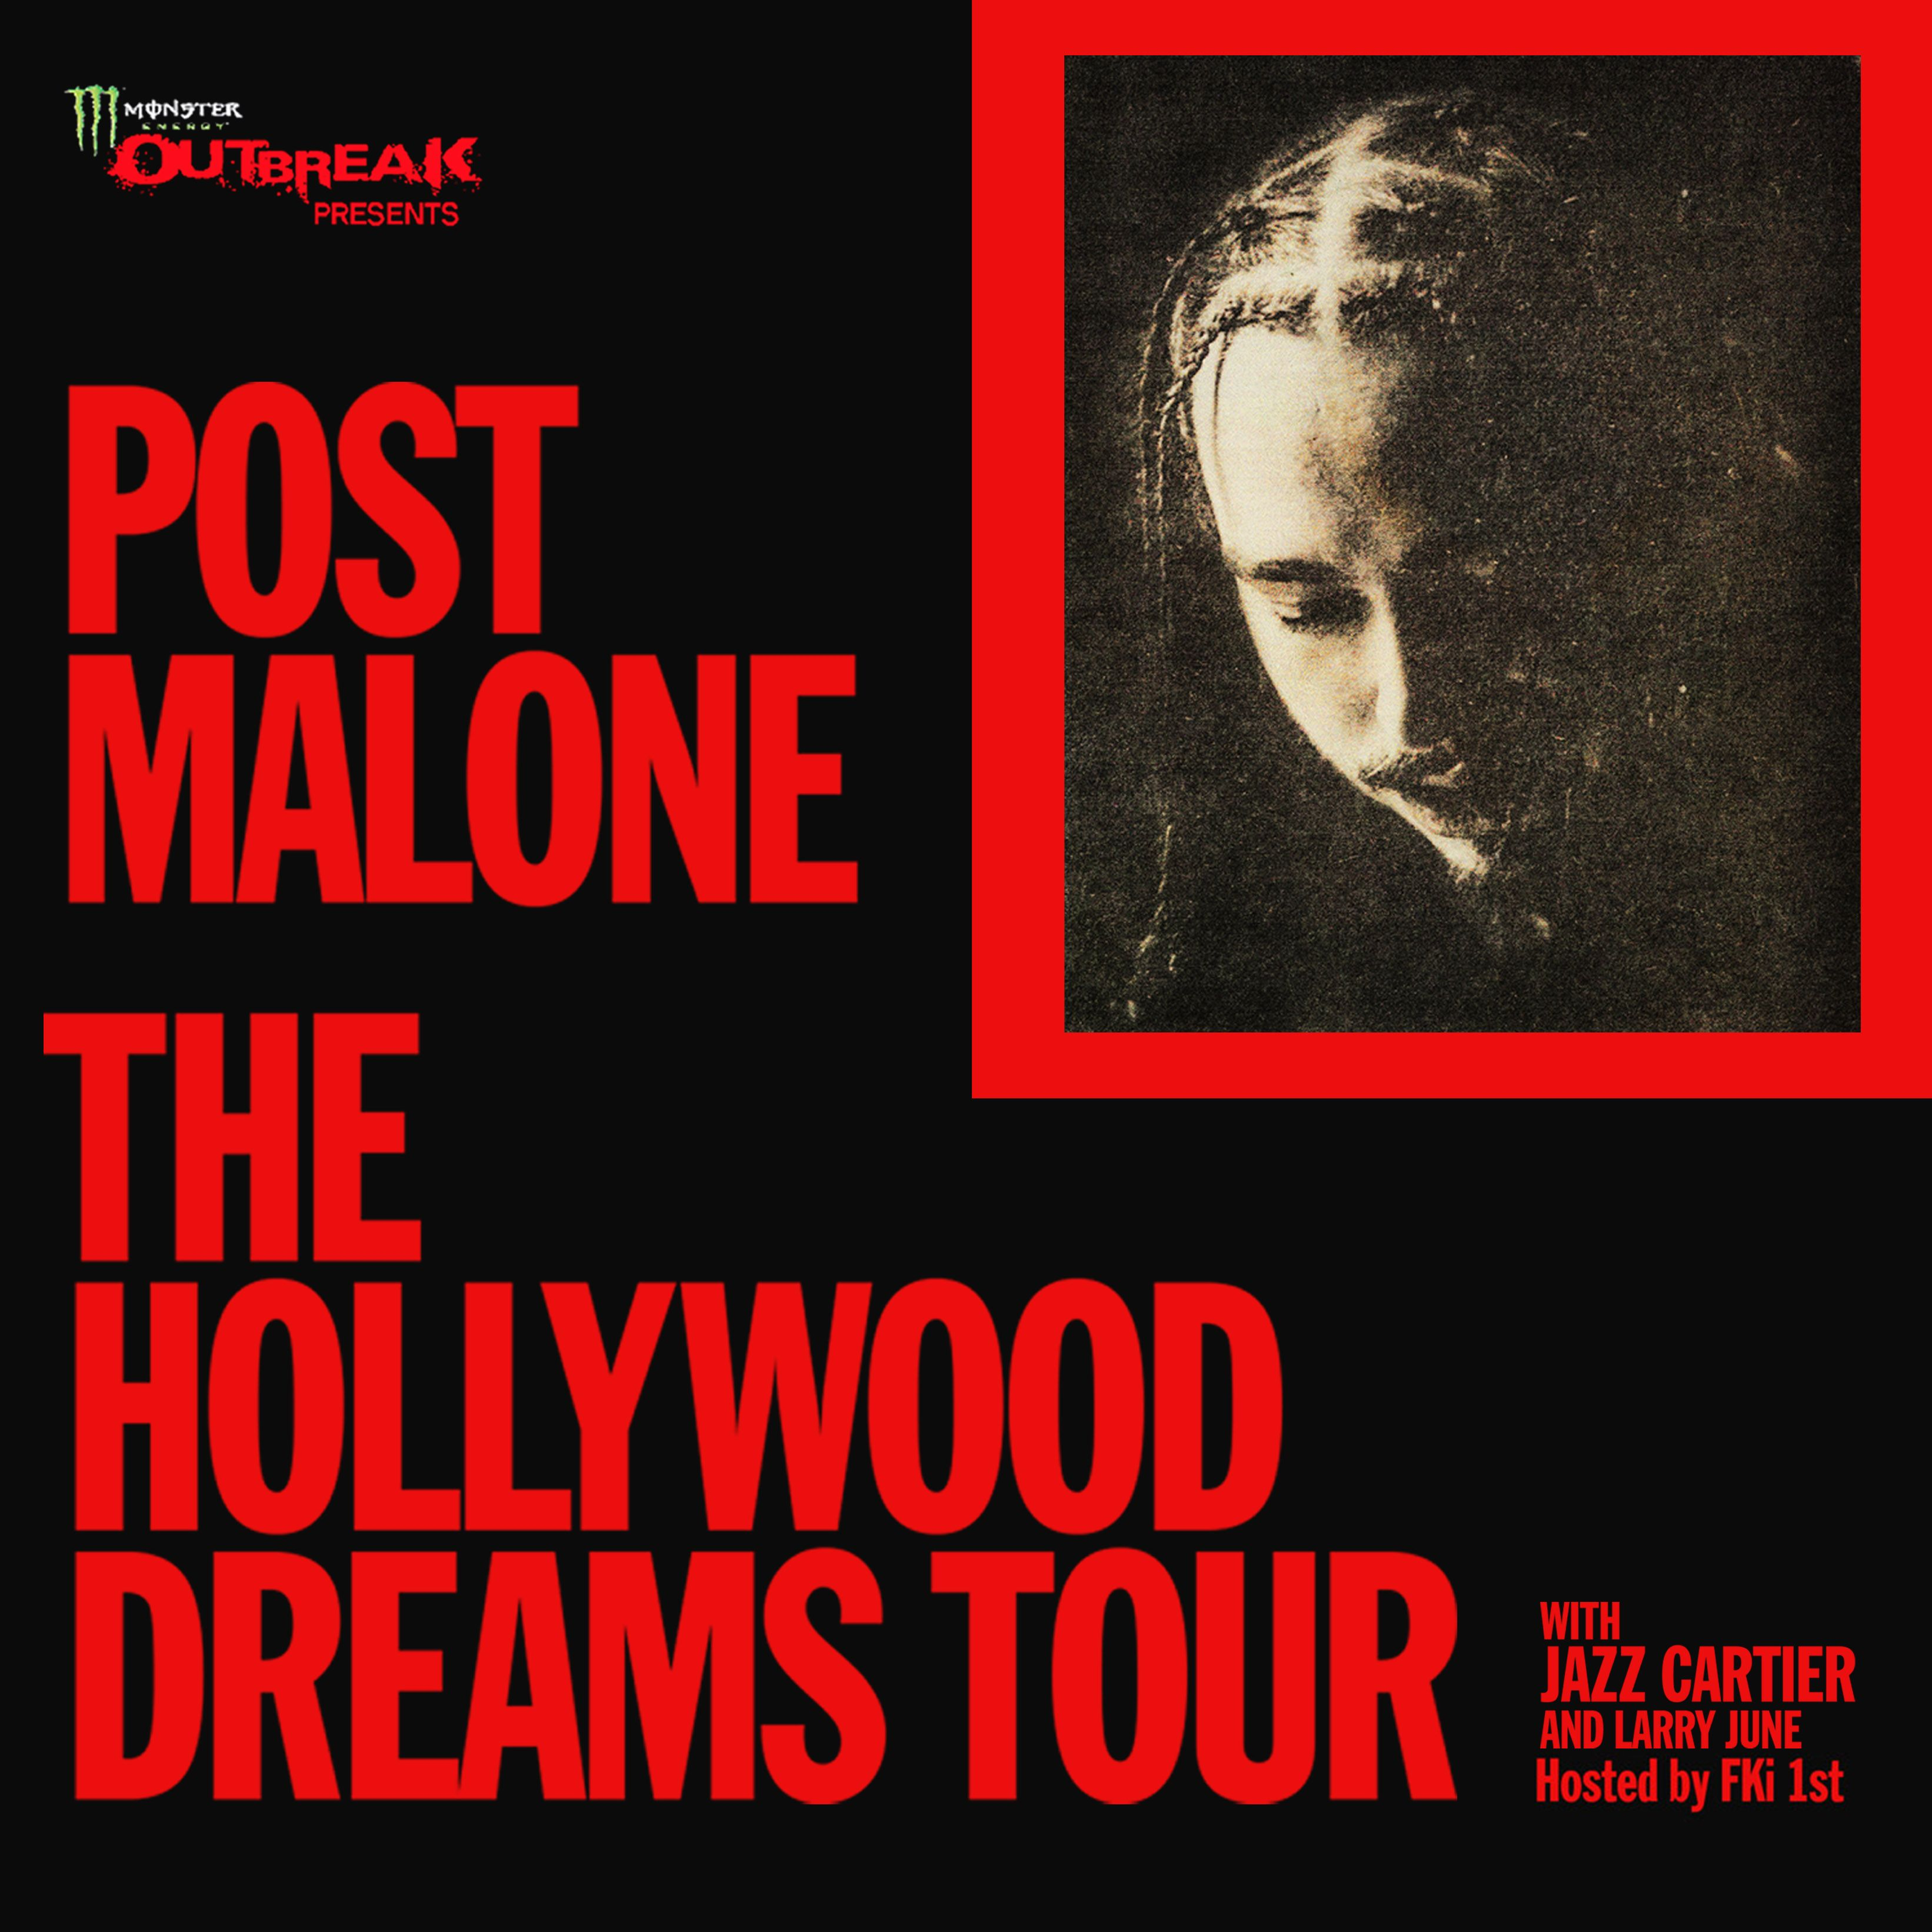 Post Malone Concert: Post Malone Is Getting Ready For The Hollywood